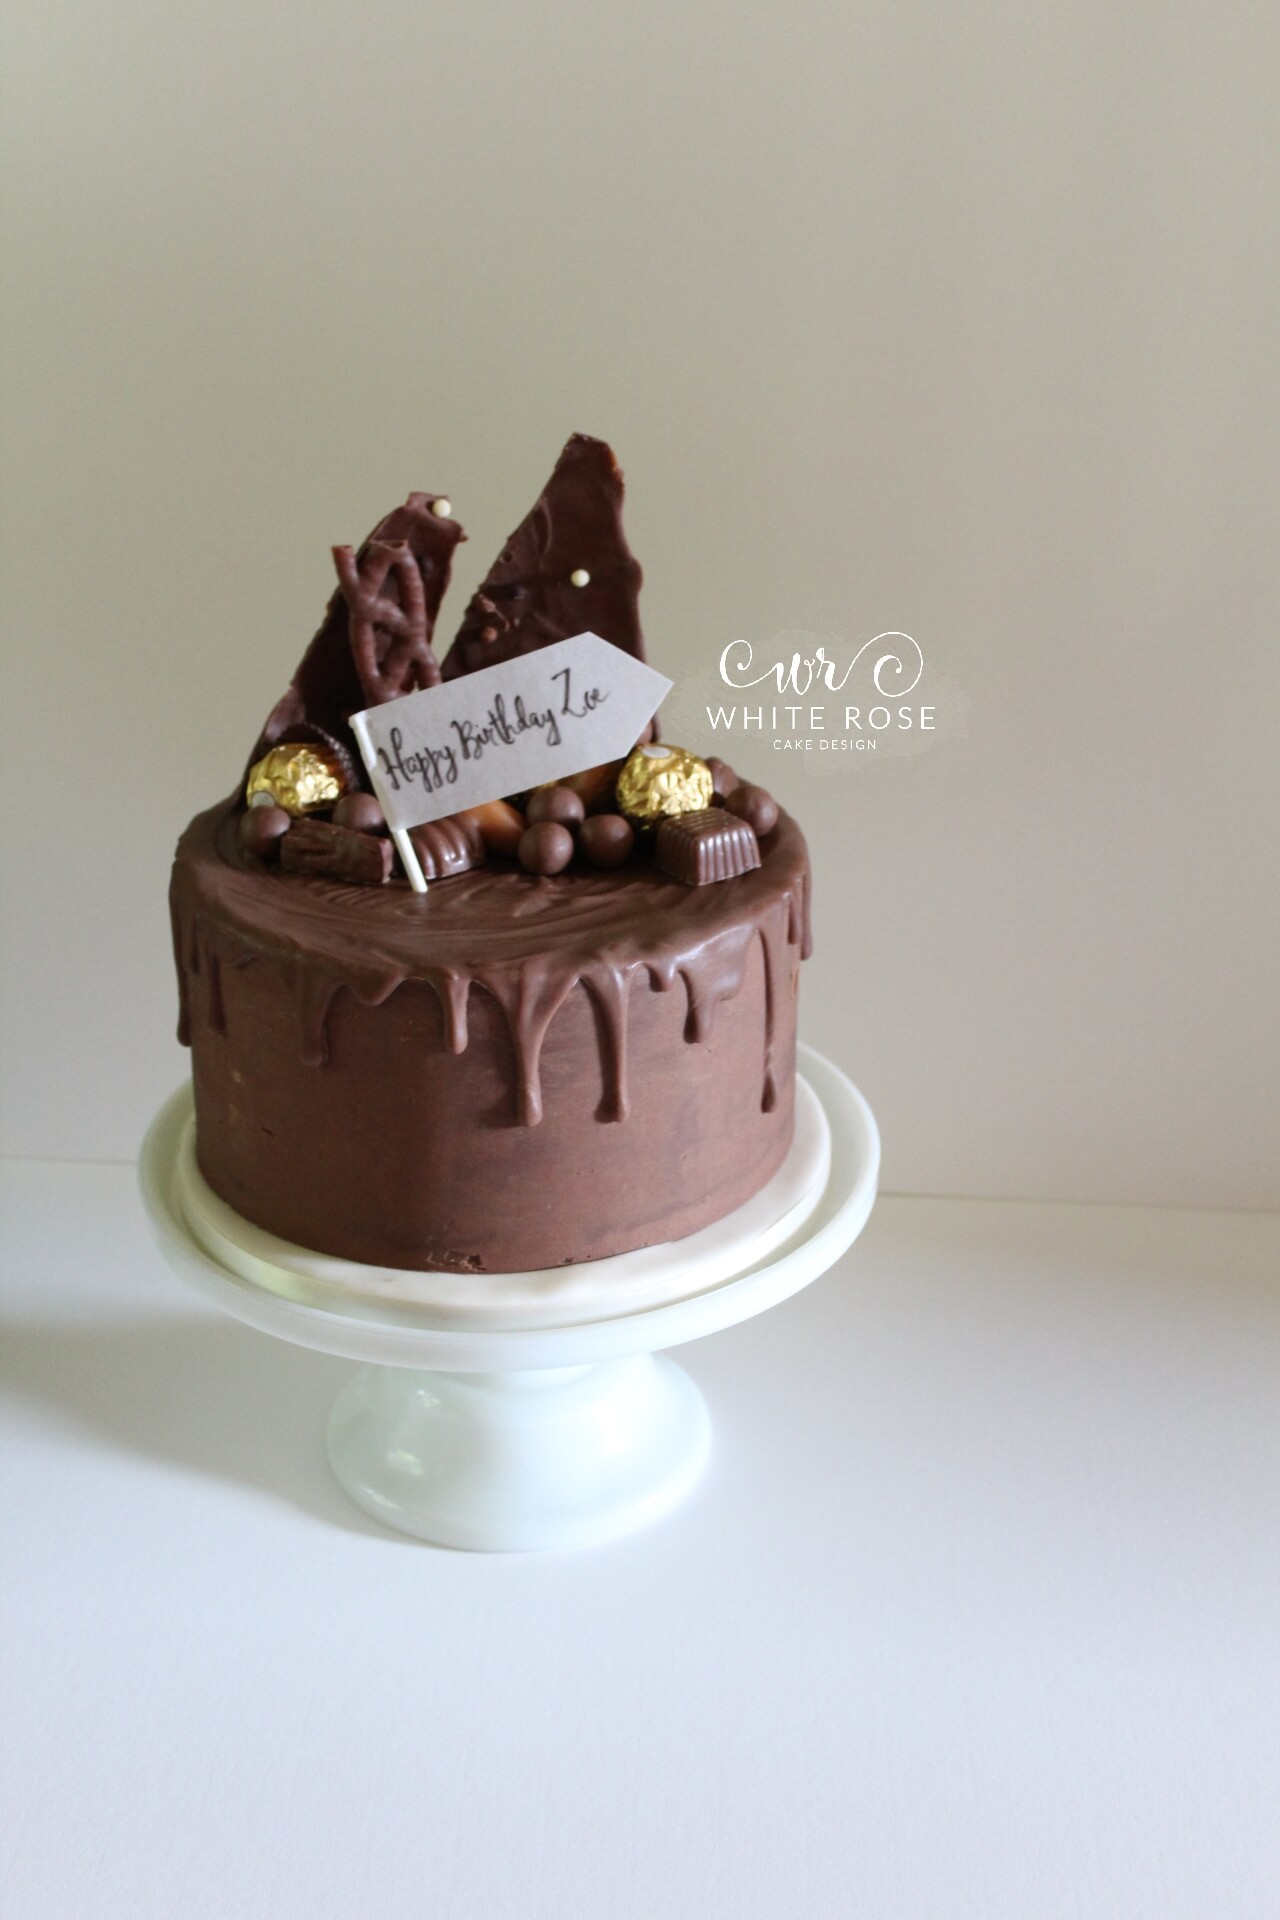 Chocolate Drippy Birthday Cake By White Rose Design Bespoke Maker In Holmfirth